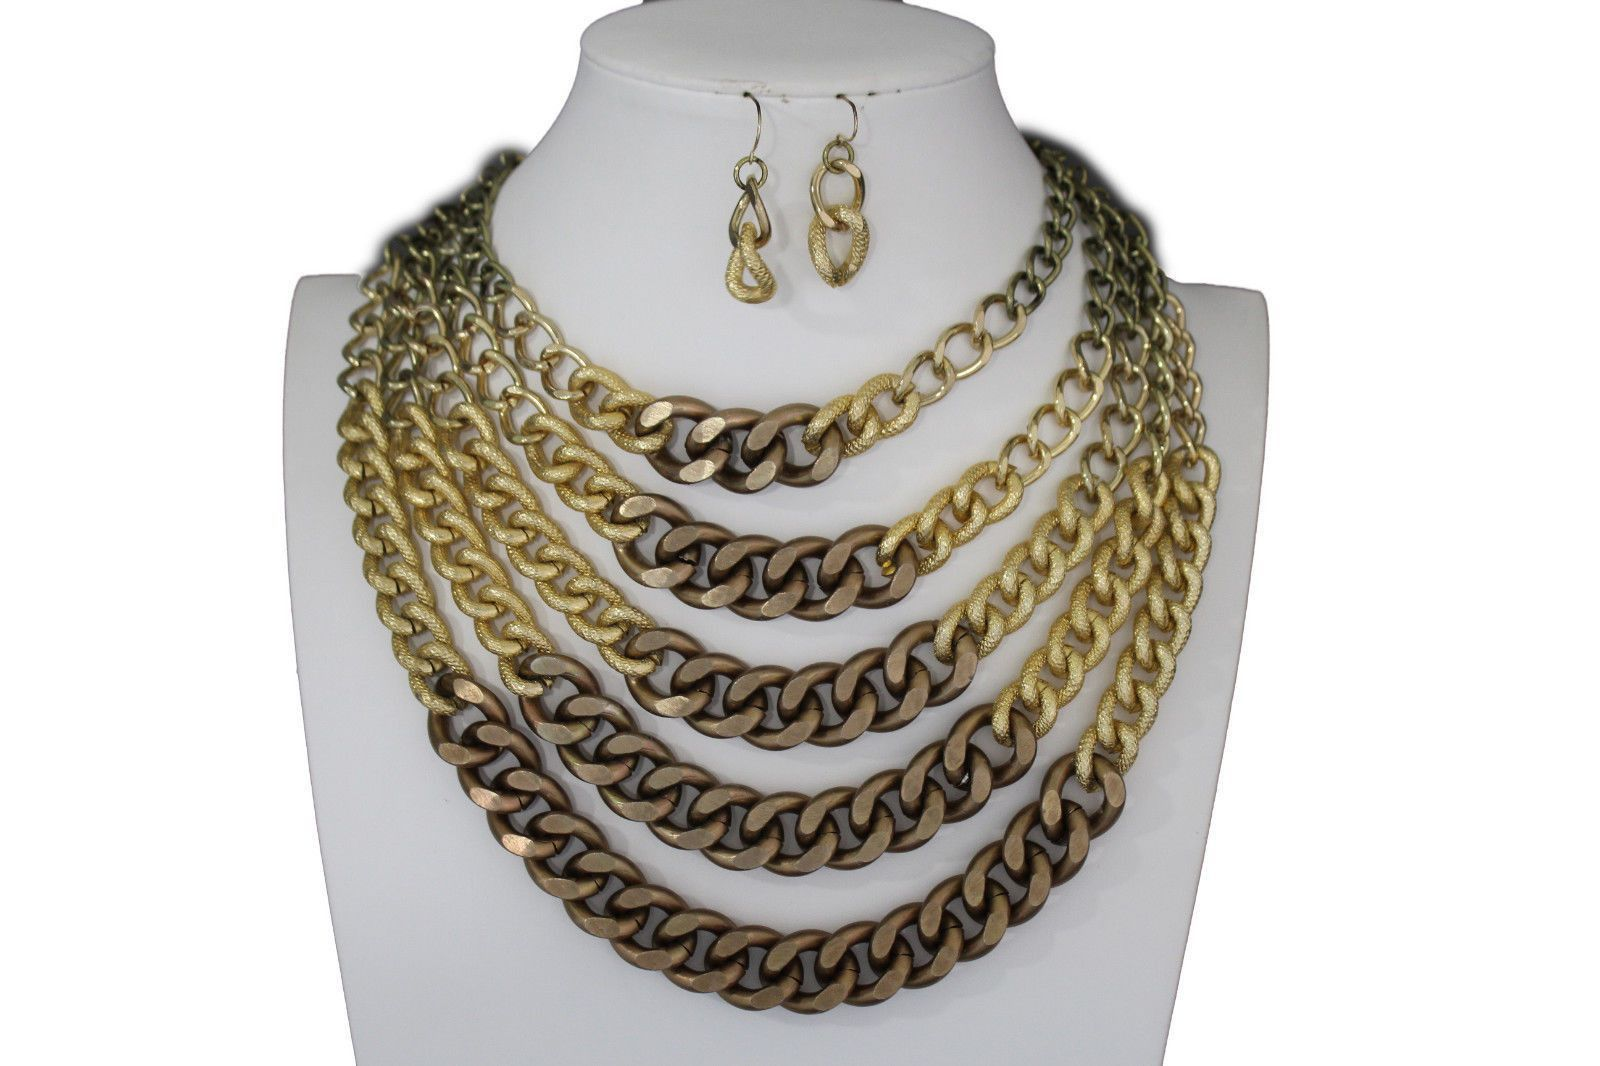 Gold bronze chunky metal chains strand necklace earrings set new